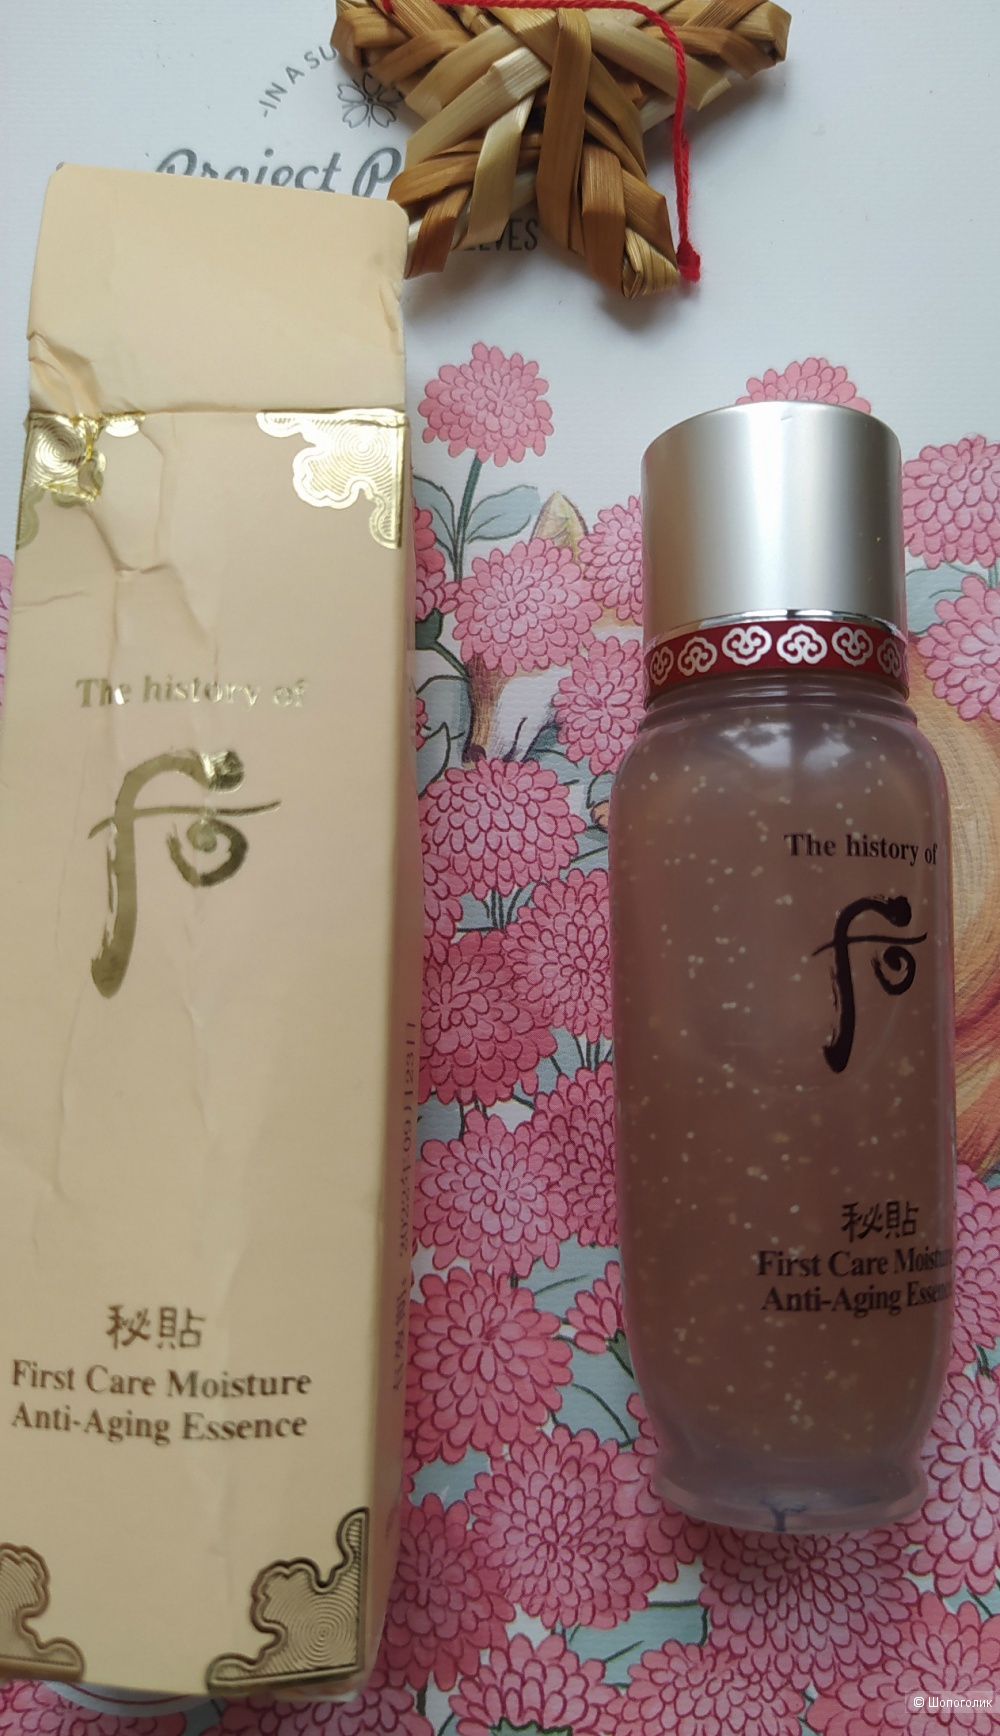 The History of Whoo First Care Moisture Anti-Aging Essence, 15 мл